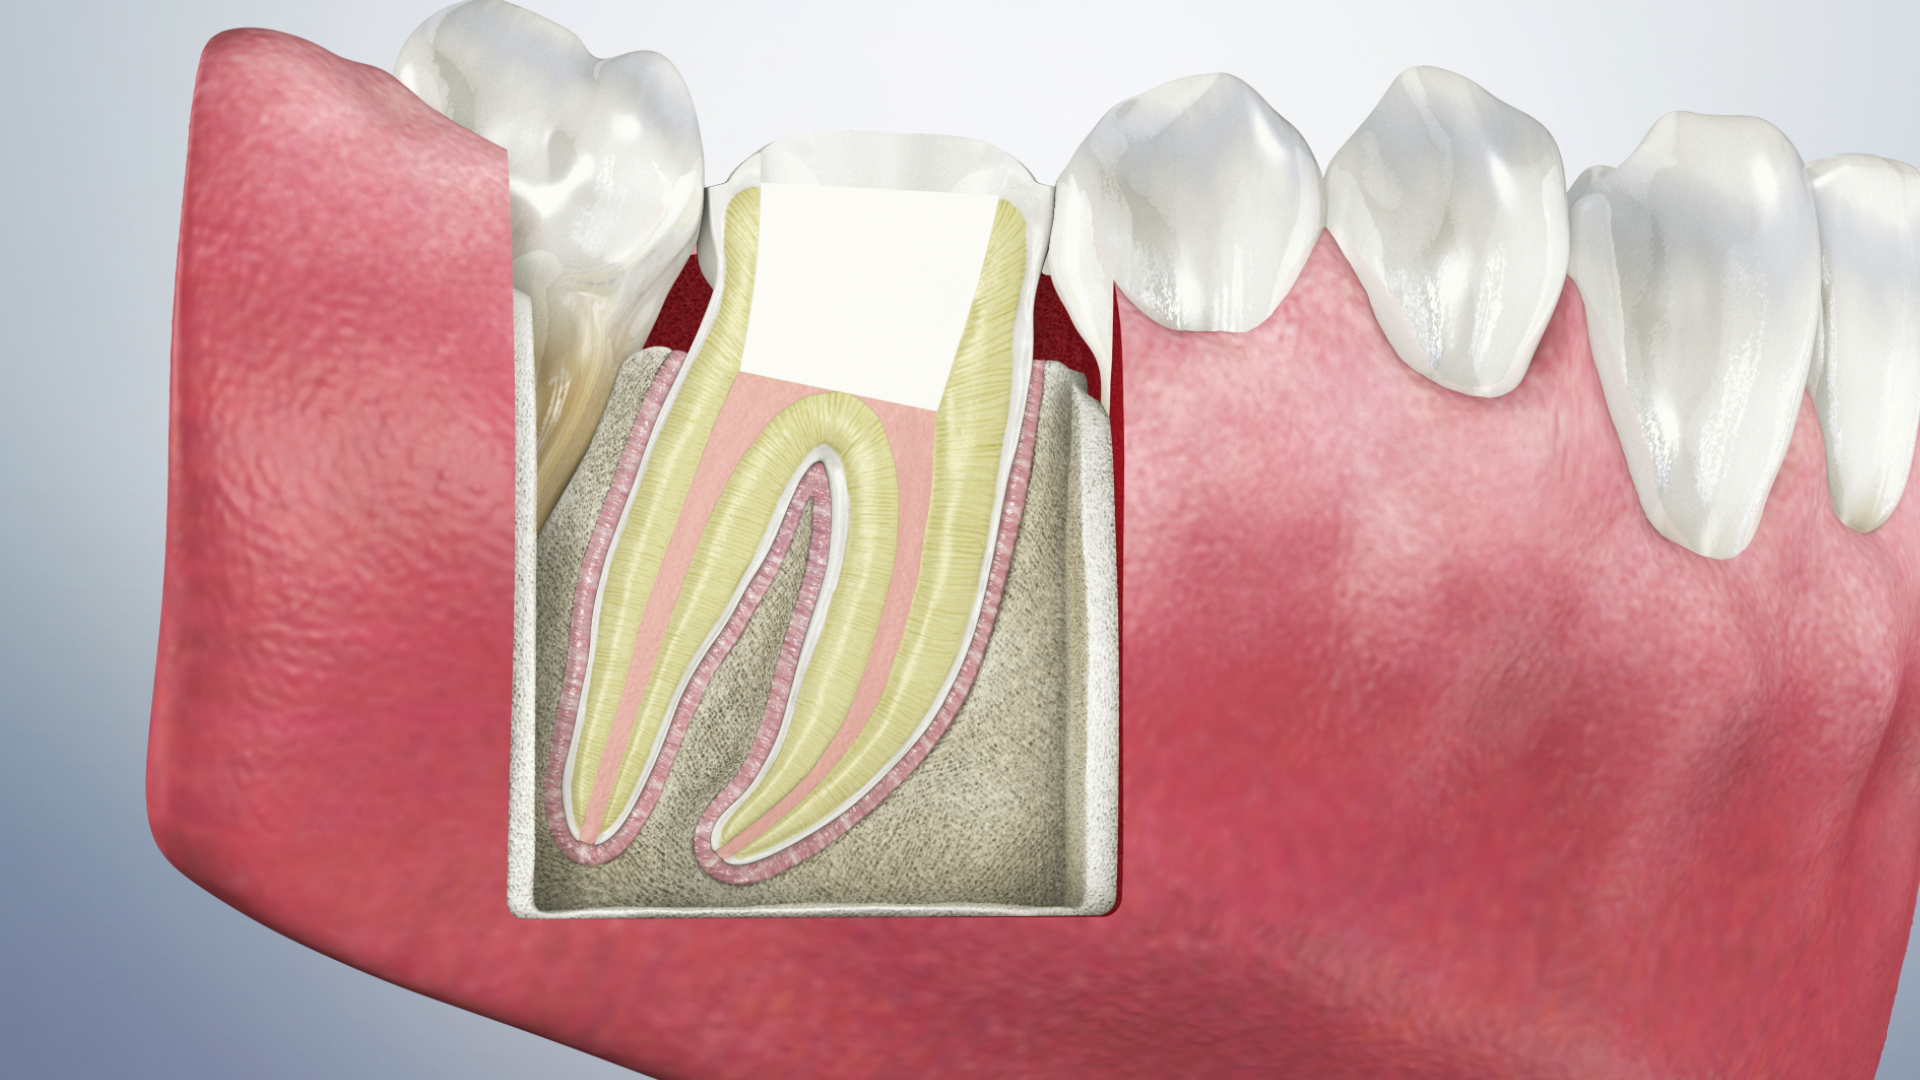 Thumbnail for a video on Post-Operative Instructions for a Root Canal